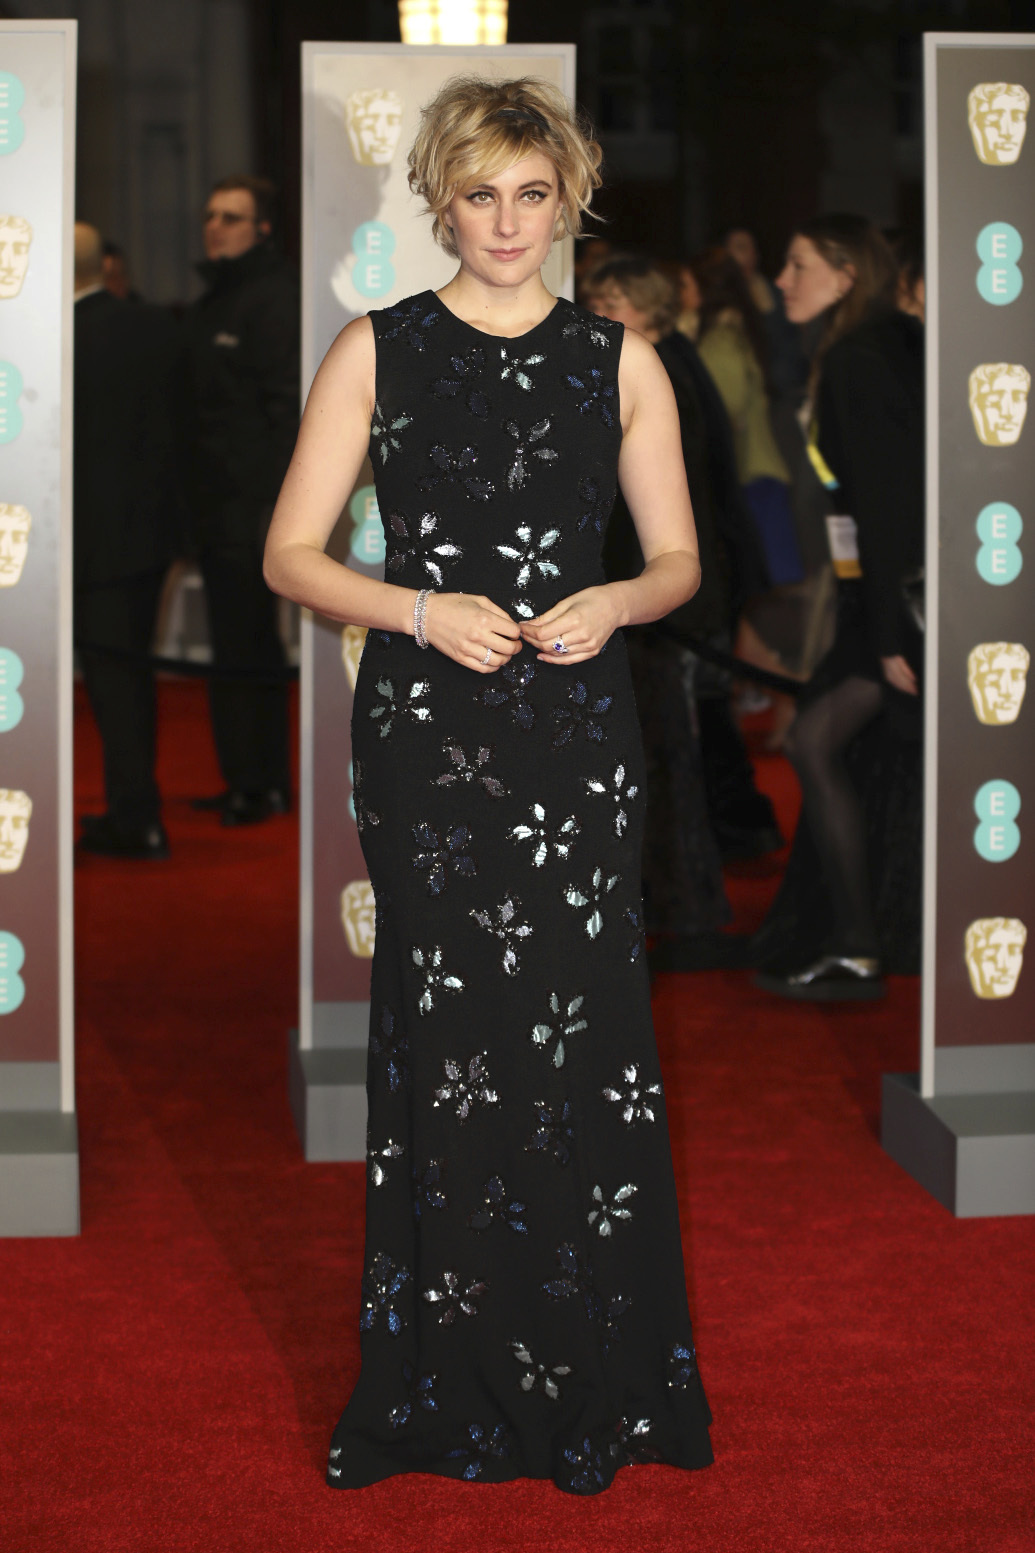 <div class='meta'><div class='origin-logo' data-origin='AP'></div><span class='caption-text' data-credit='Vianney Le Caer/Invision/AP'>Actress Greta Gerwig poses for photographers upon arrival at the BAFTA Awards 2018 in London, Sunday, Feb. 18, 2018.</span></div>